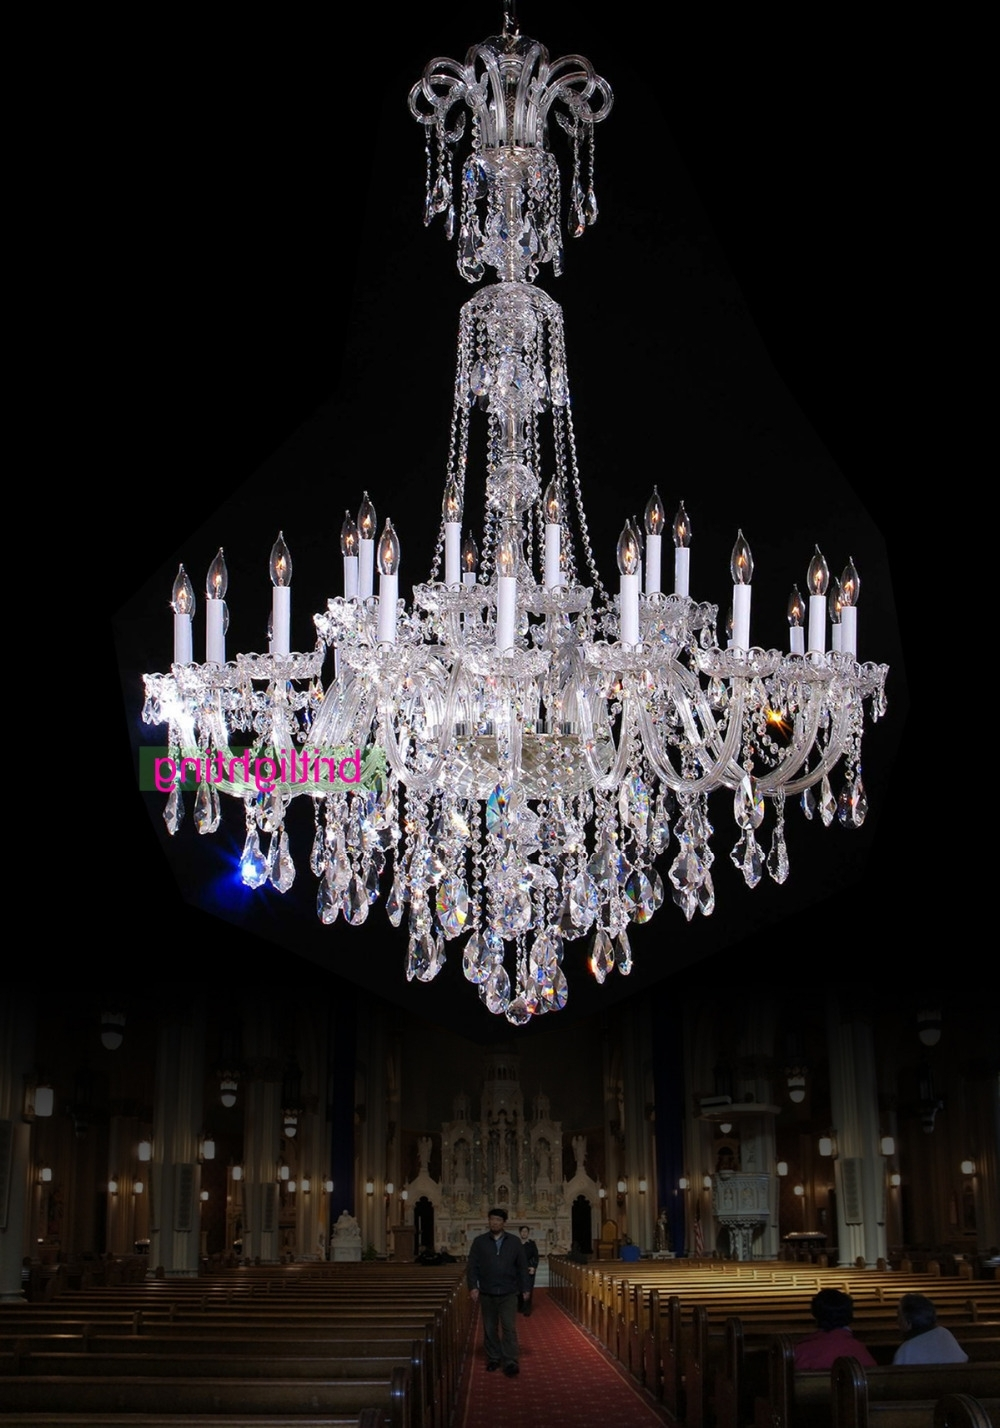 Extra Large Crystal Chandeliers Throughout Well Known Large Chandelier With Crystal Pendants Big Lamp For Hotel Extra (View 8 of 15)